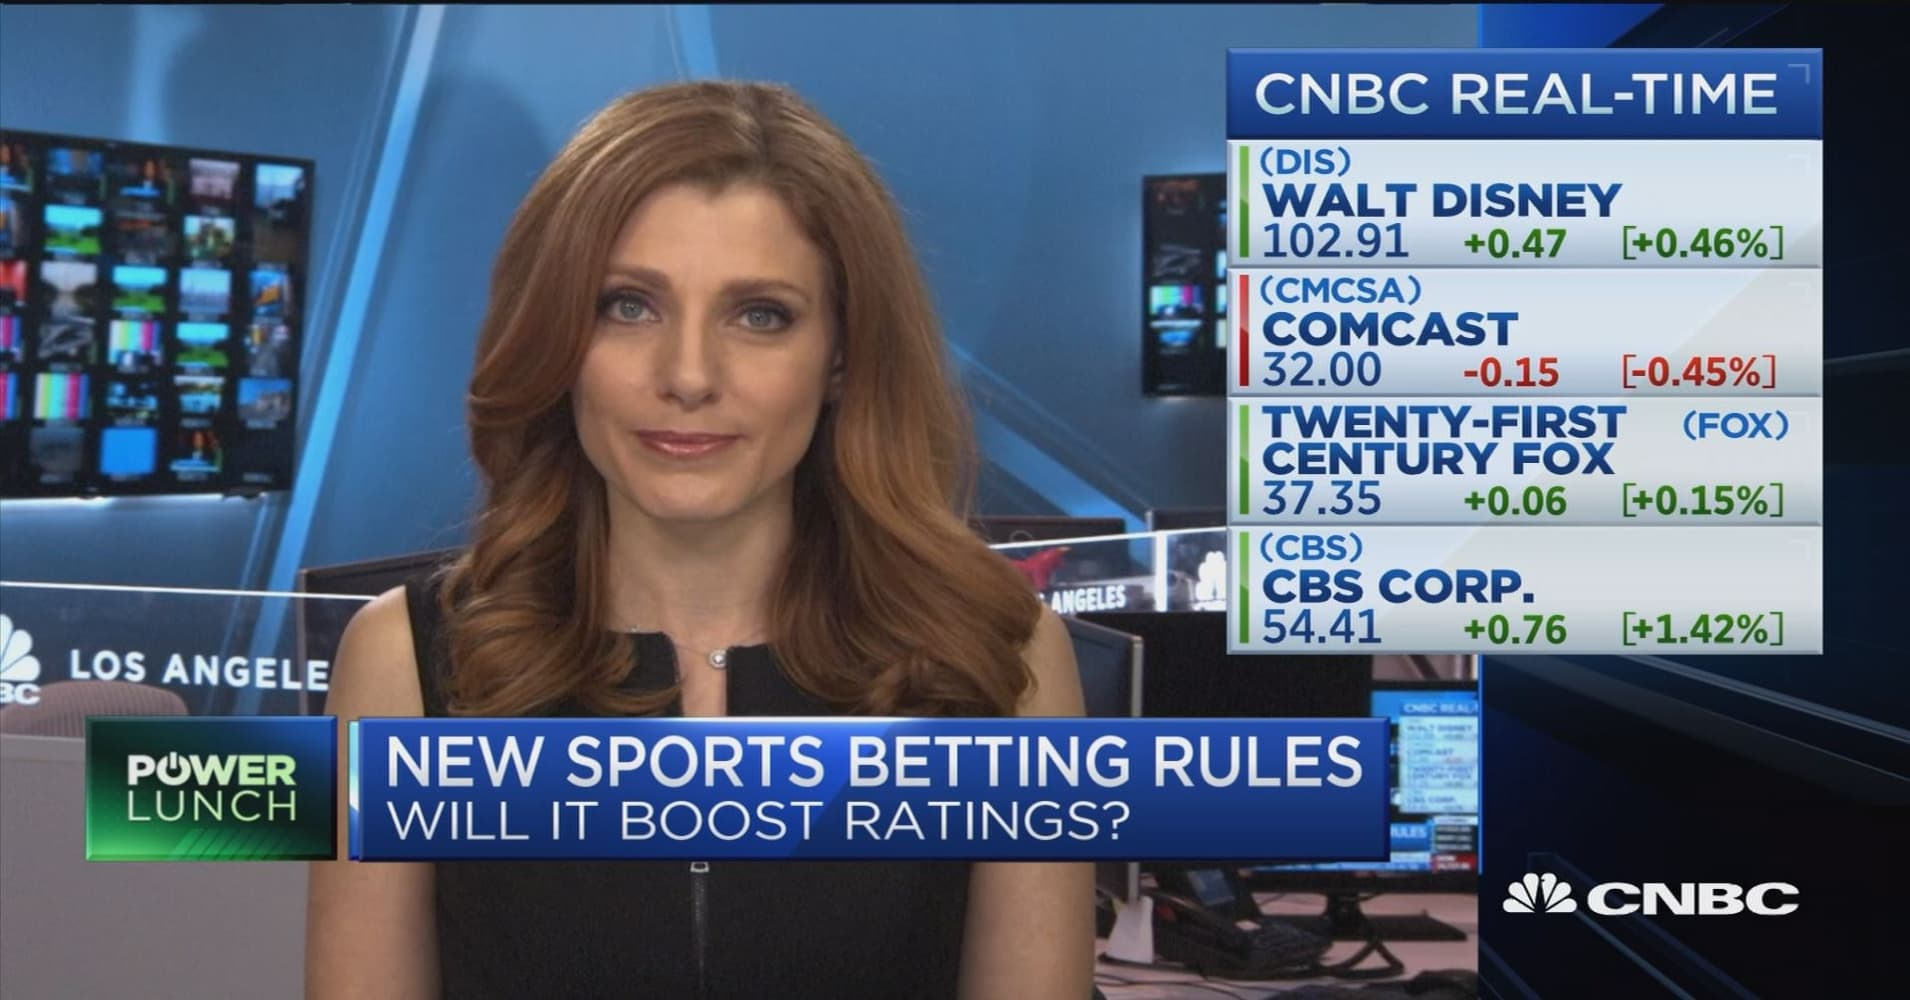 Cnbc show about sports betting natex binary options